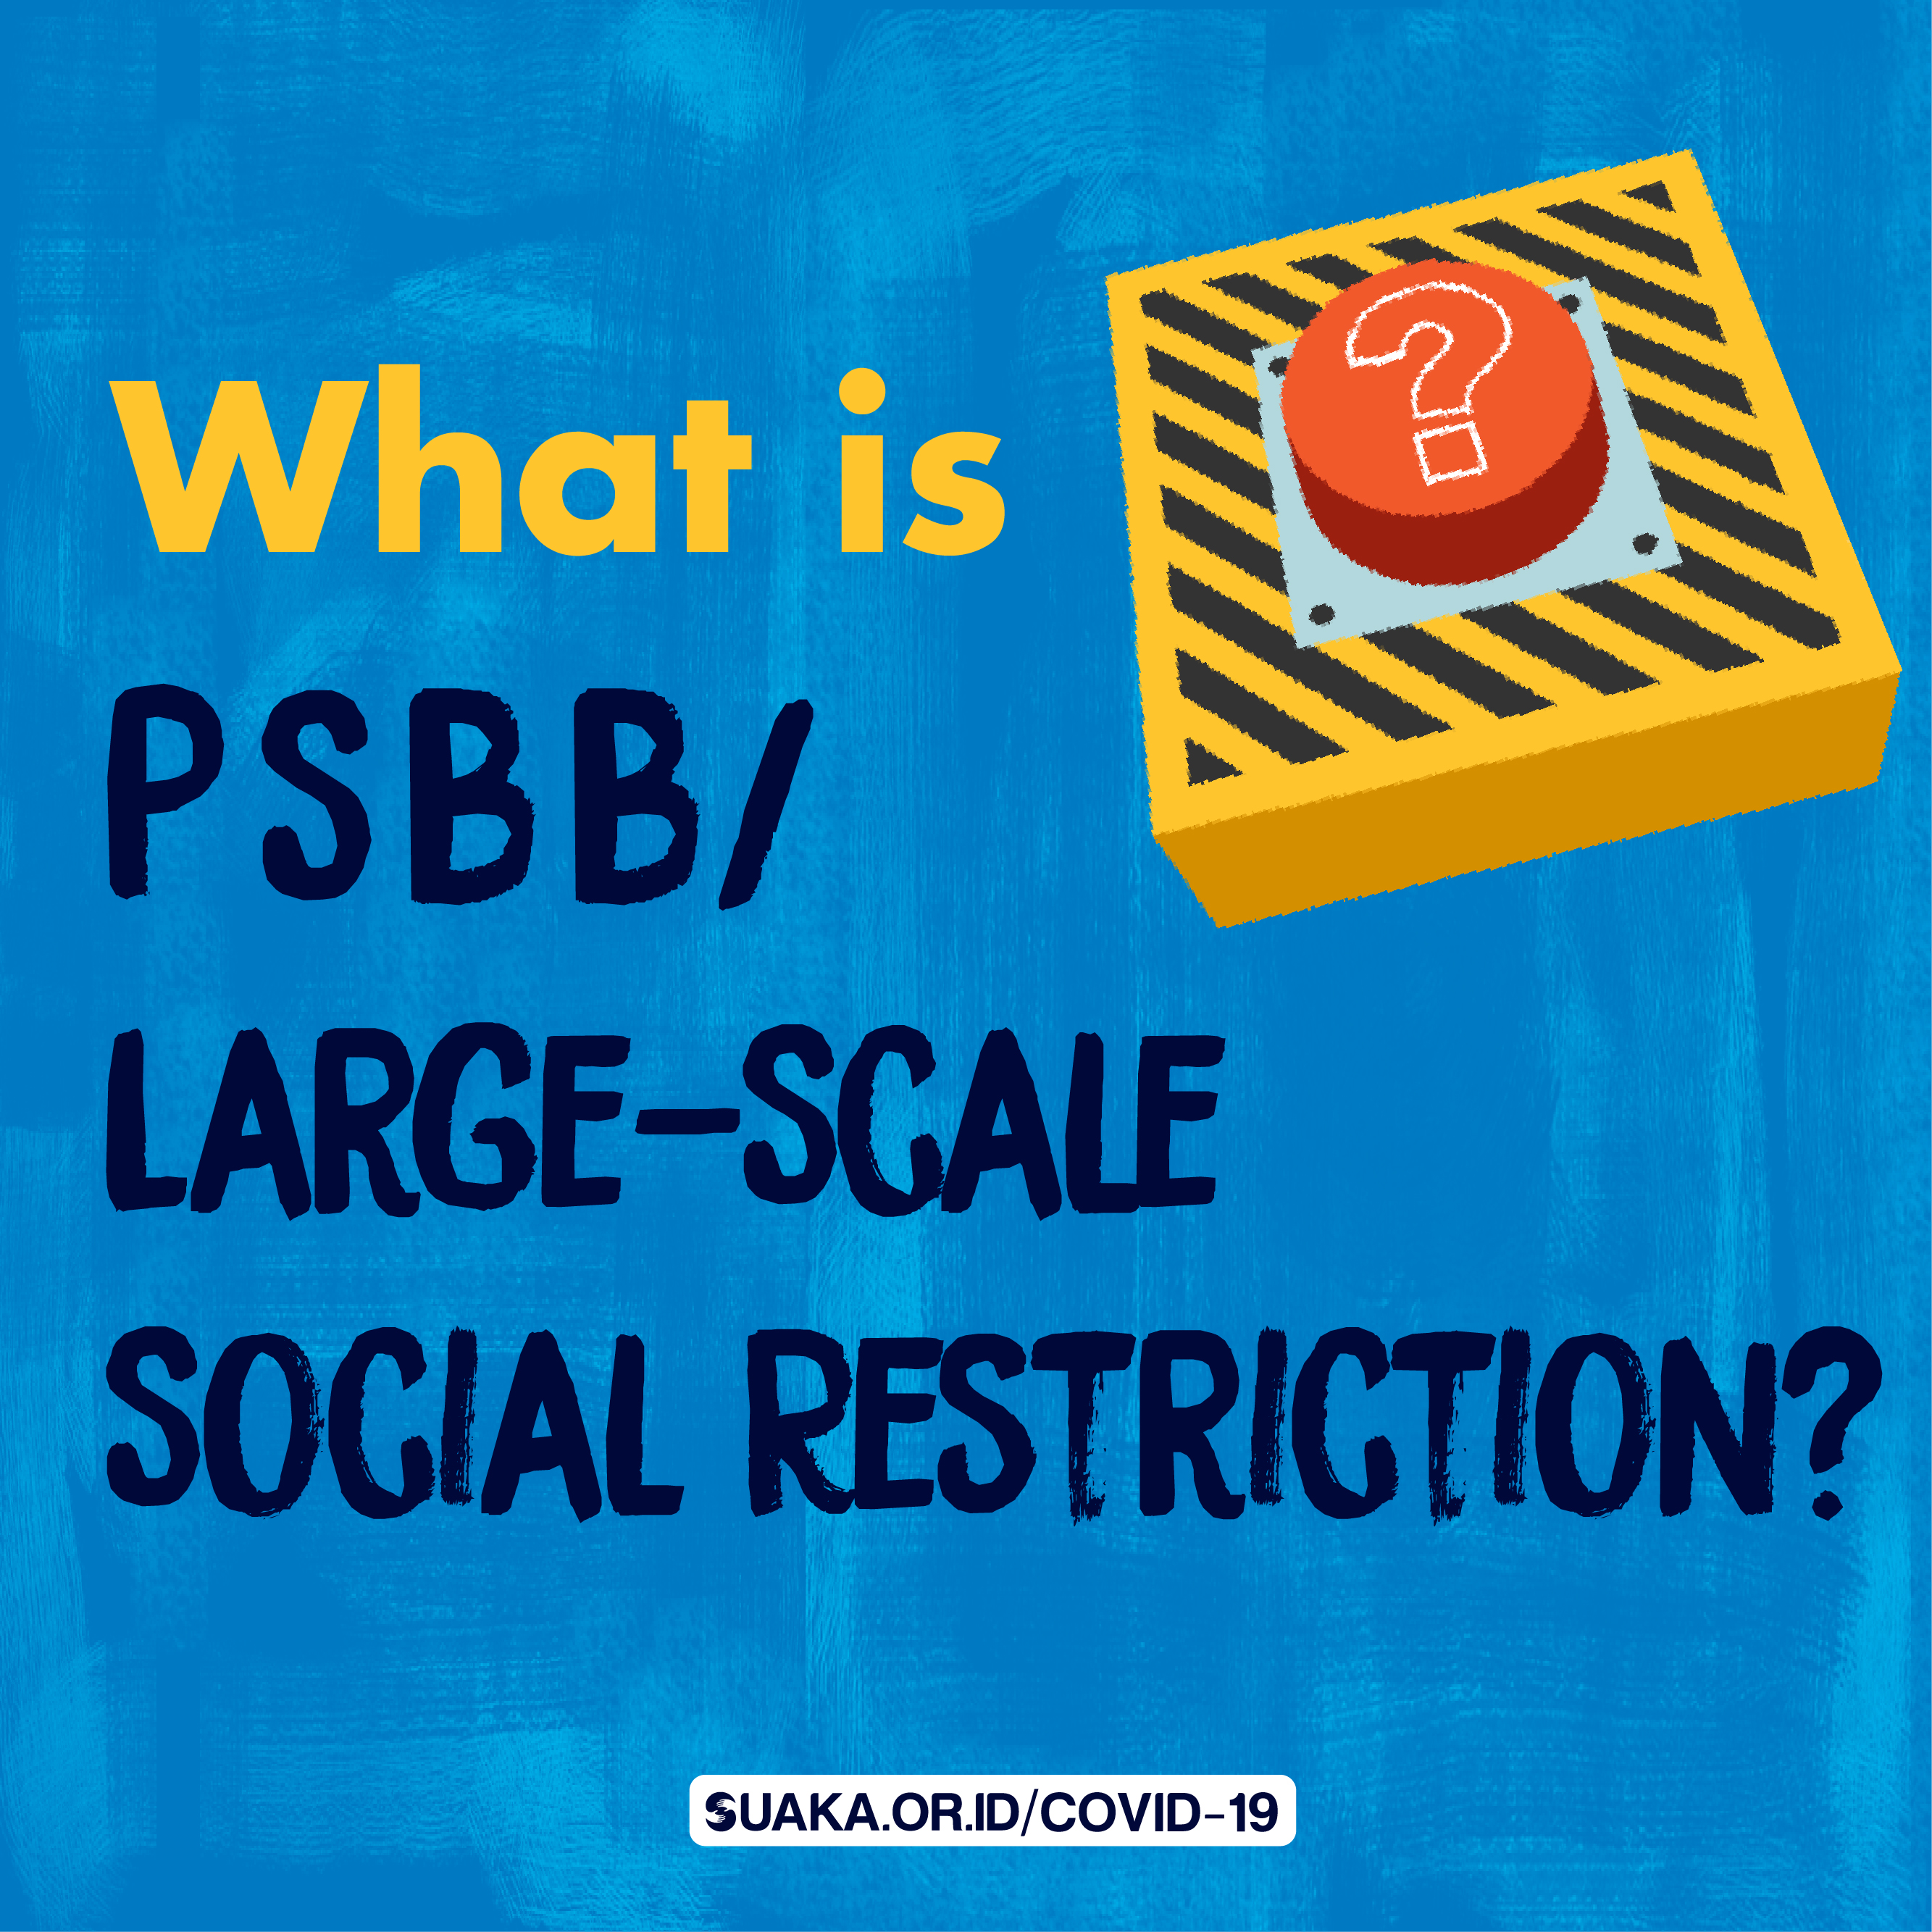 Psbb Large Scale Social Restriction During Covid 19 Pandemic Suaka